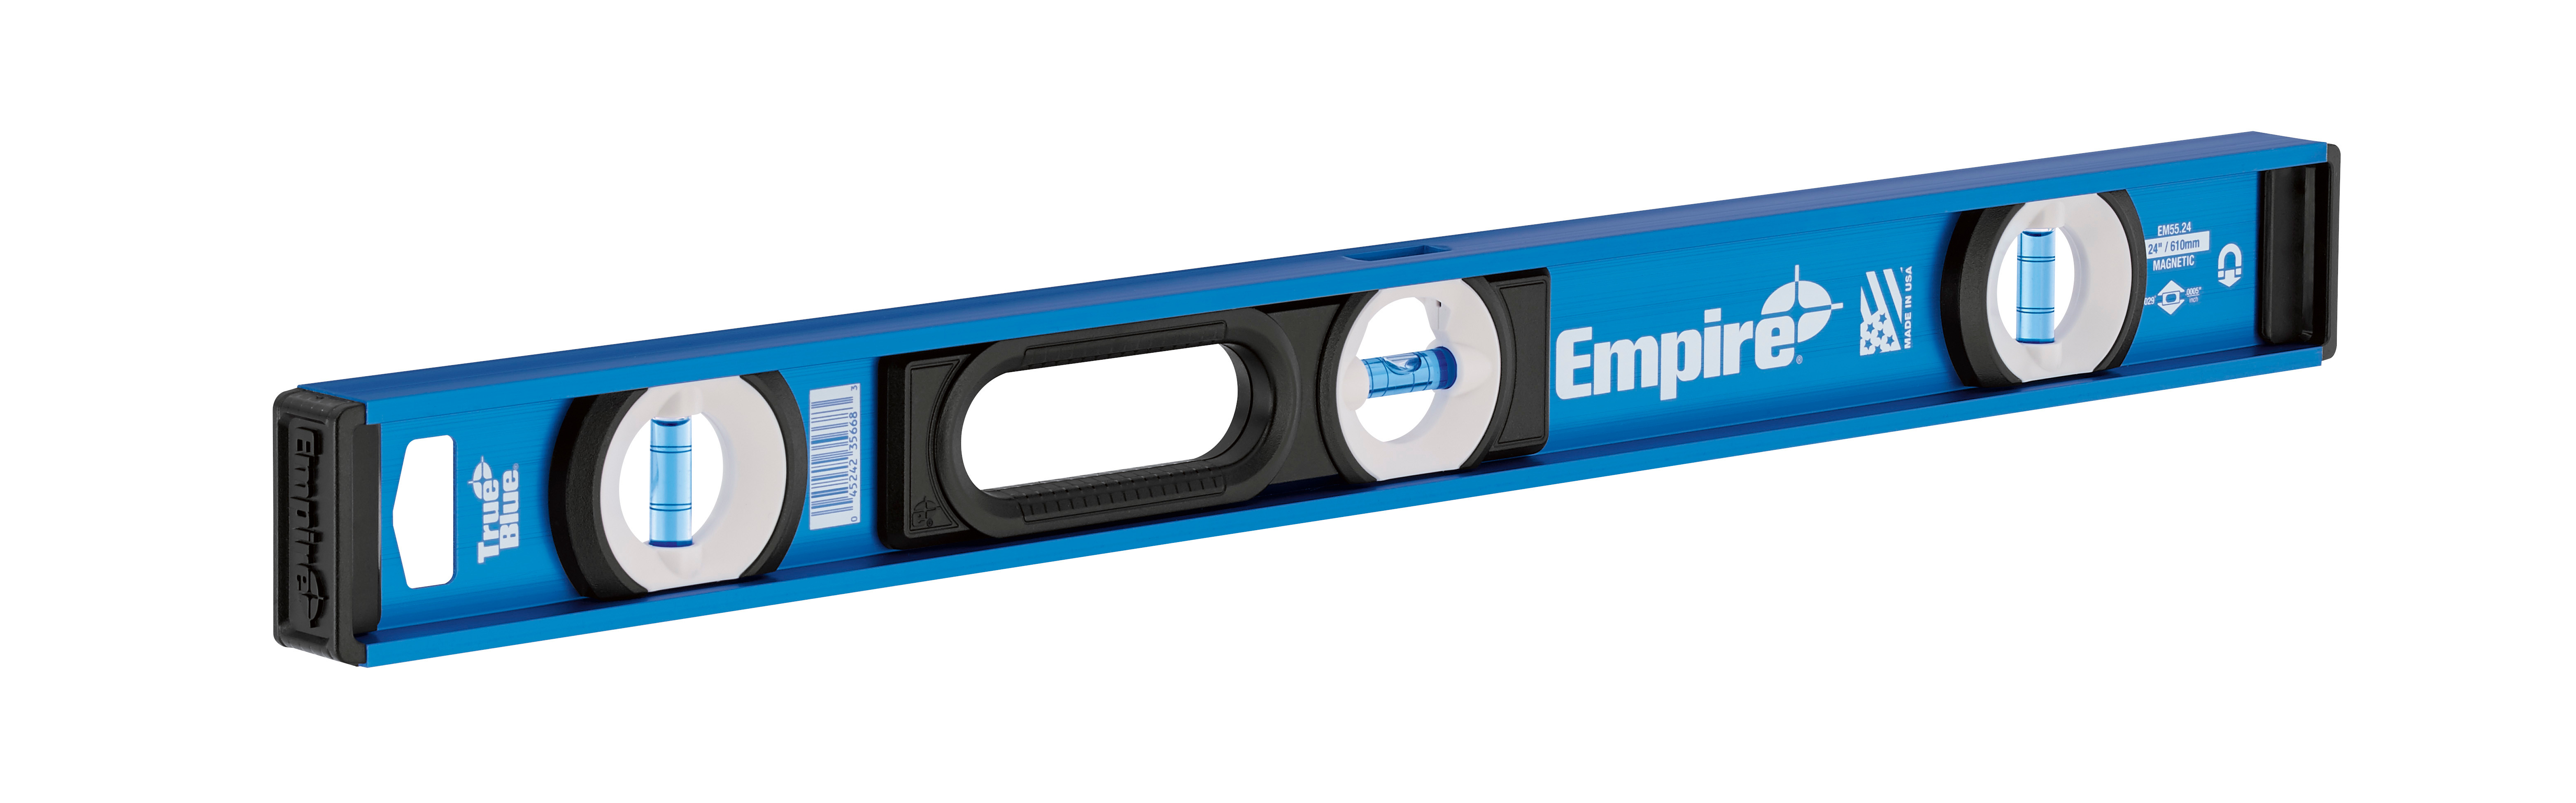 Milwaukee® Empire® EM55.24 Heavy Duty Magnetic I-Beam Level, 24 in L, 3 Vials, Aluminum, (1) Level, (2) Plumb Vial Position, 0.0005 in Accuracy